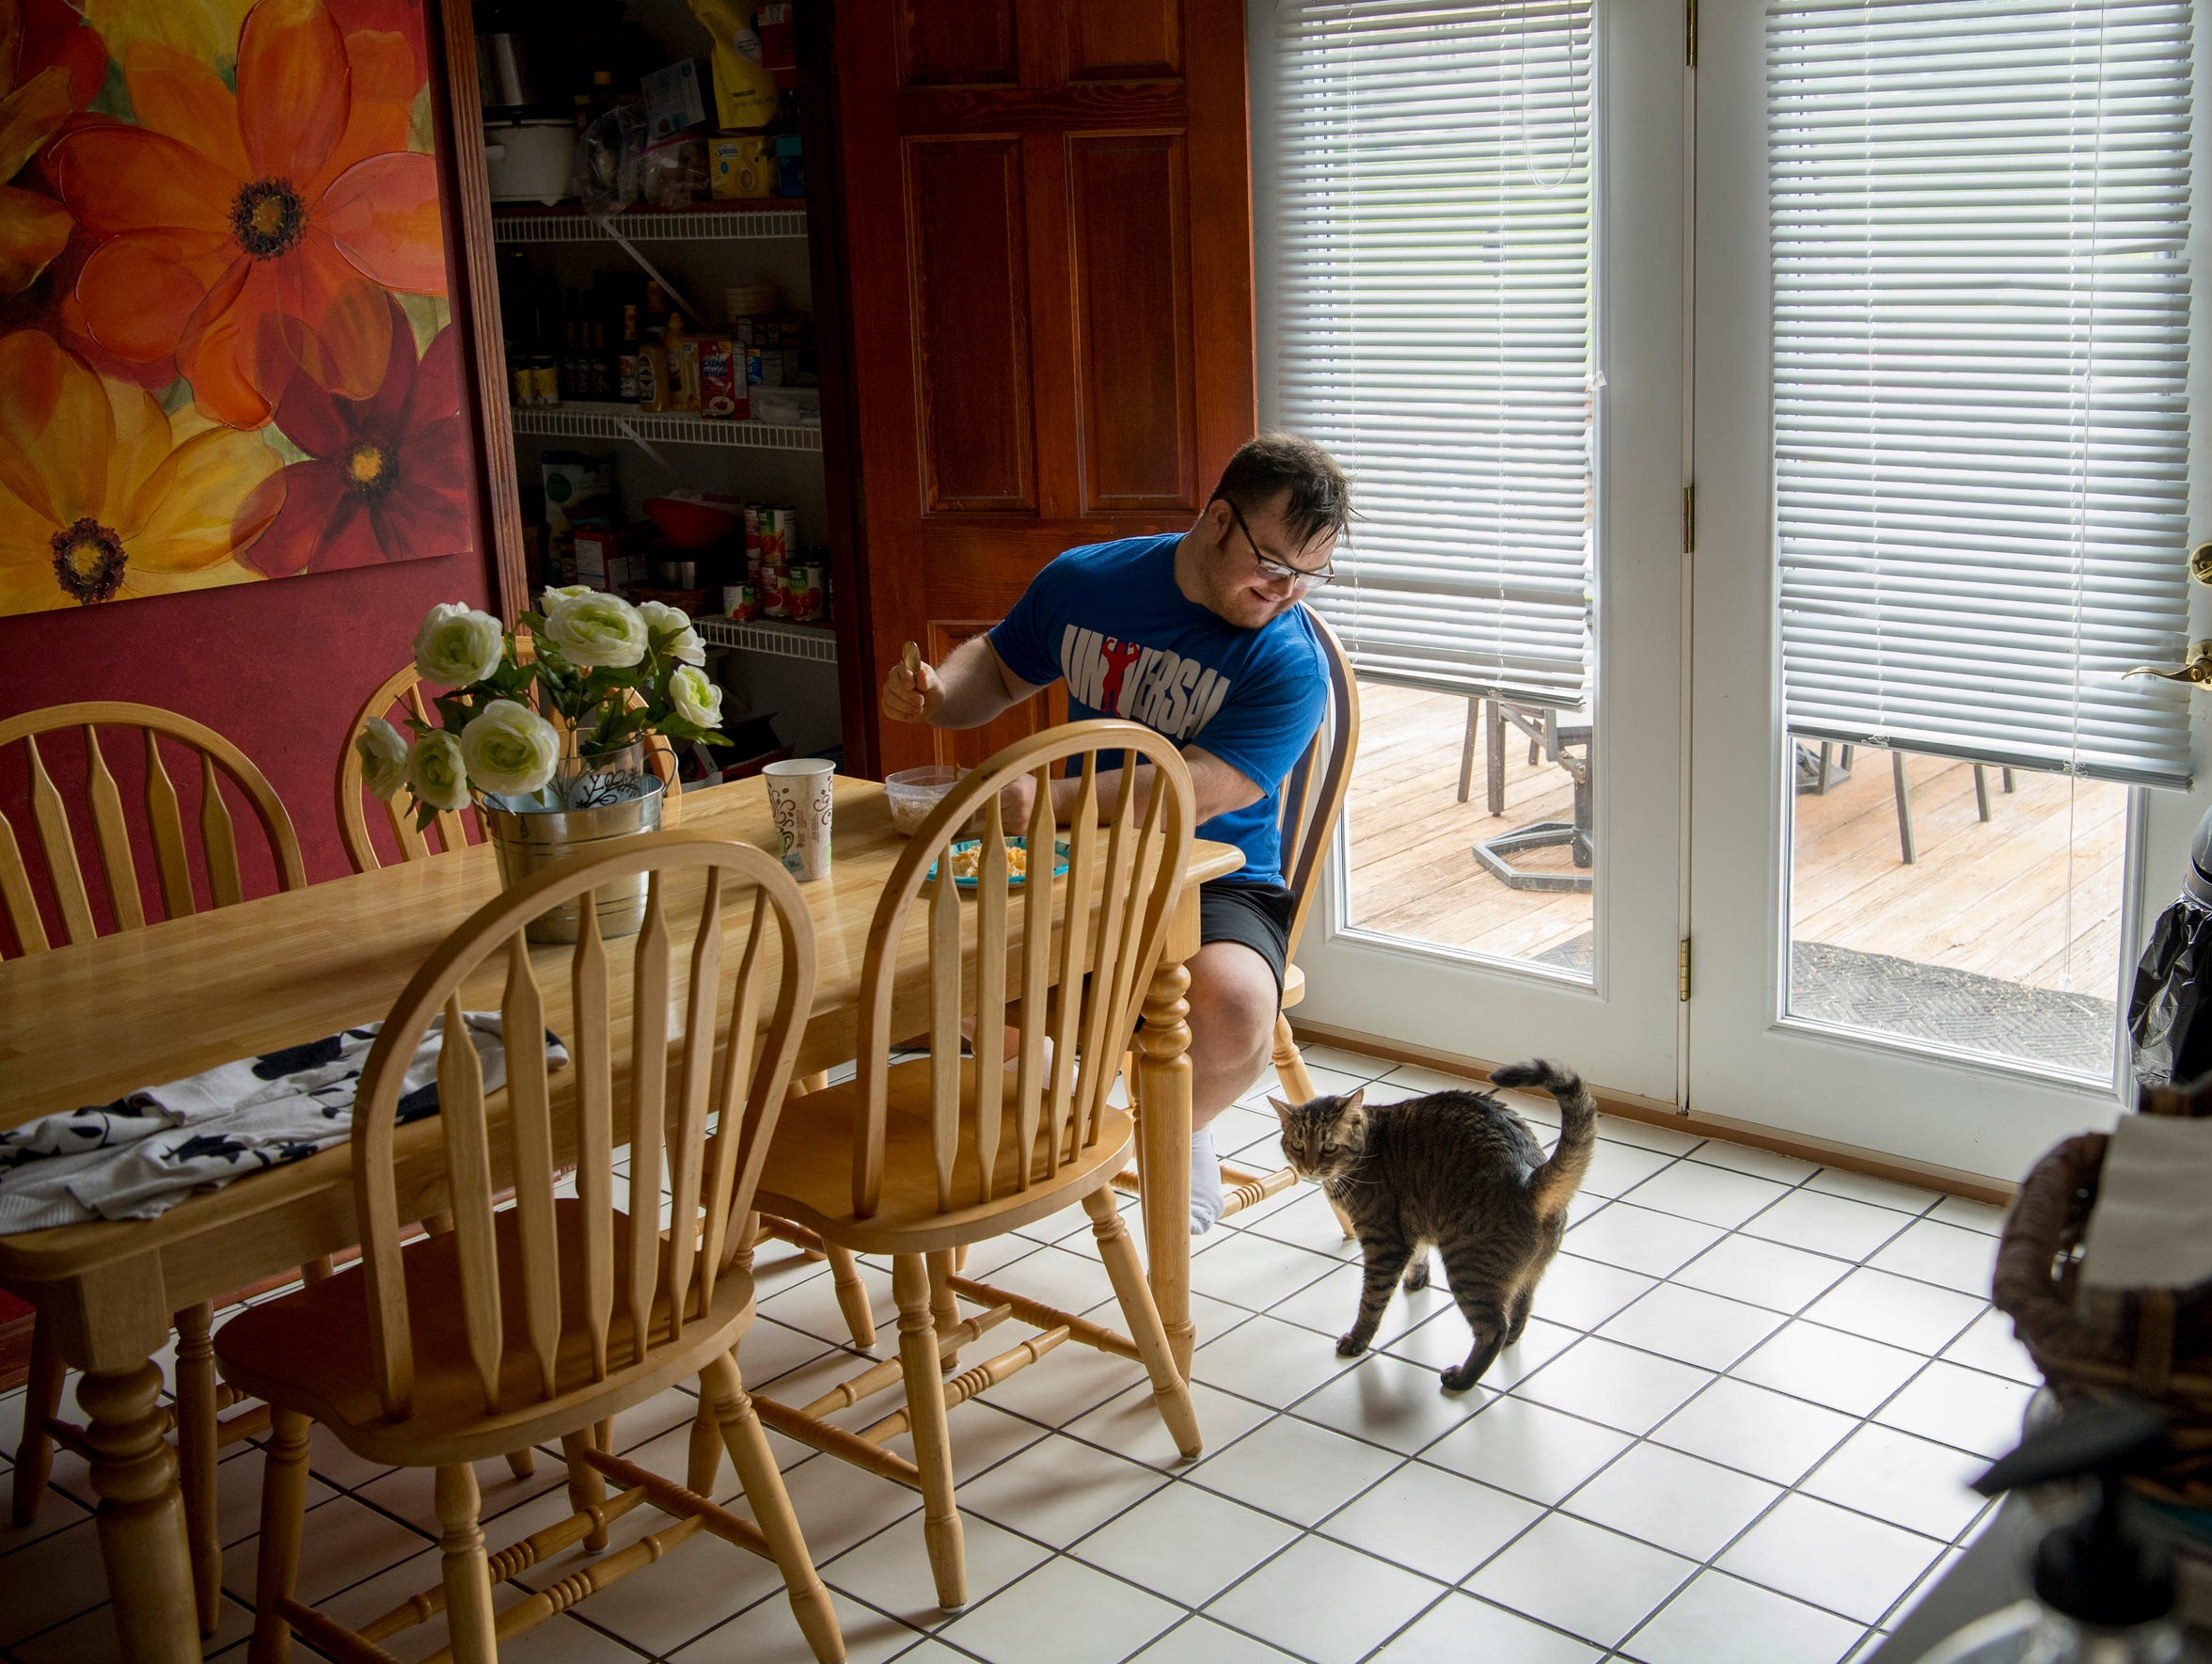 With his cat, Spidey, his only company, Collin sits